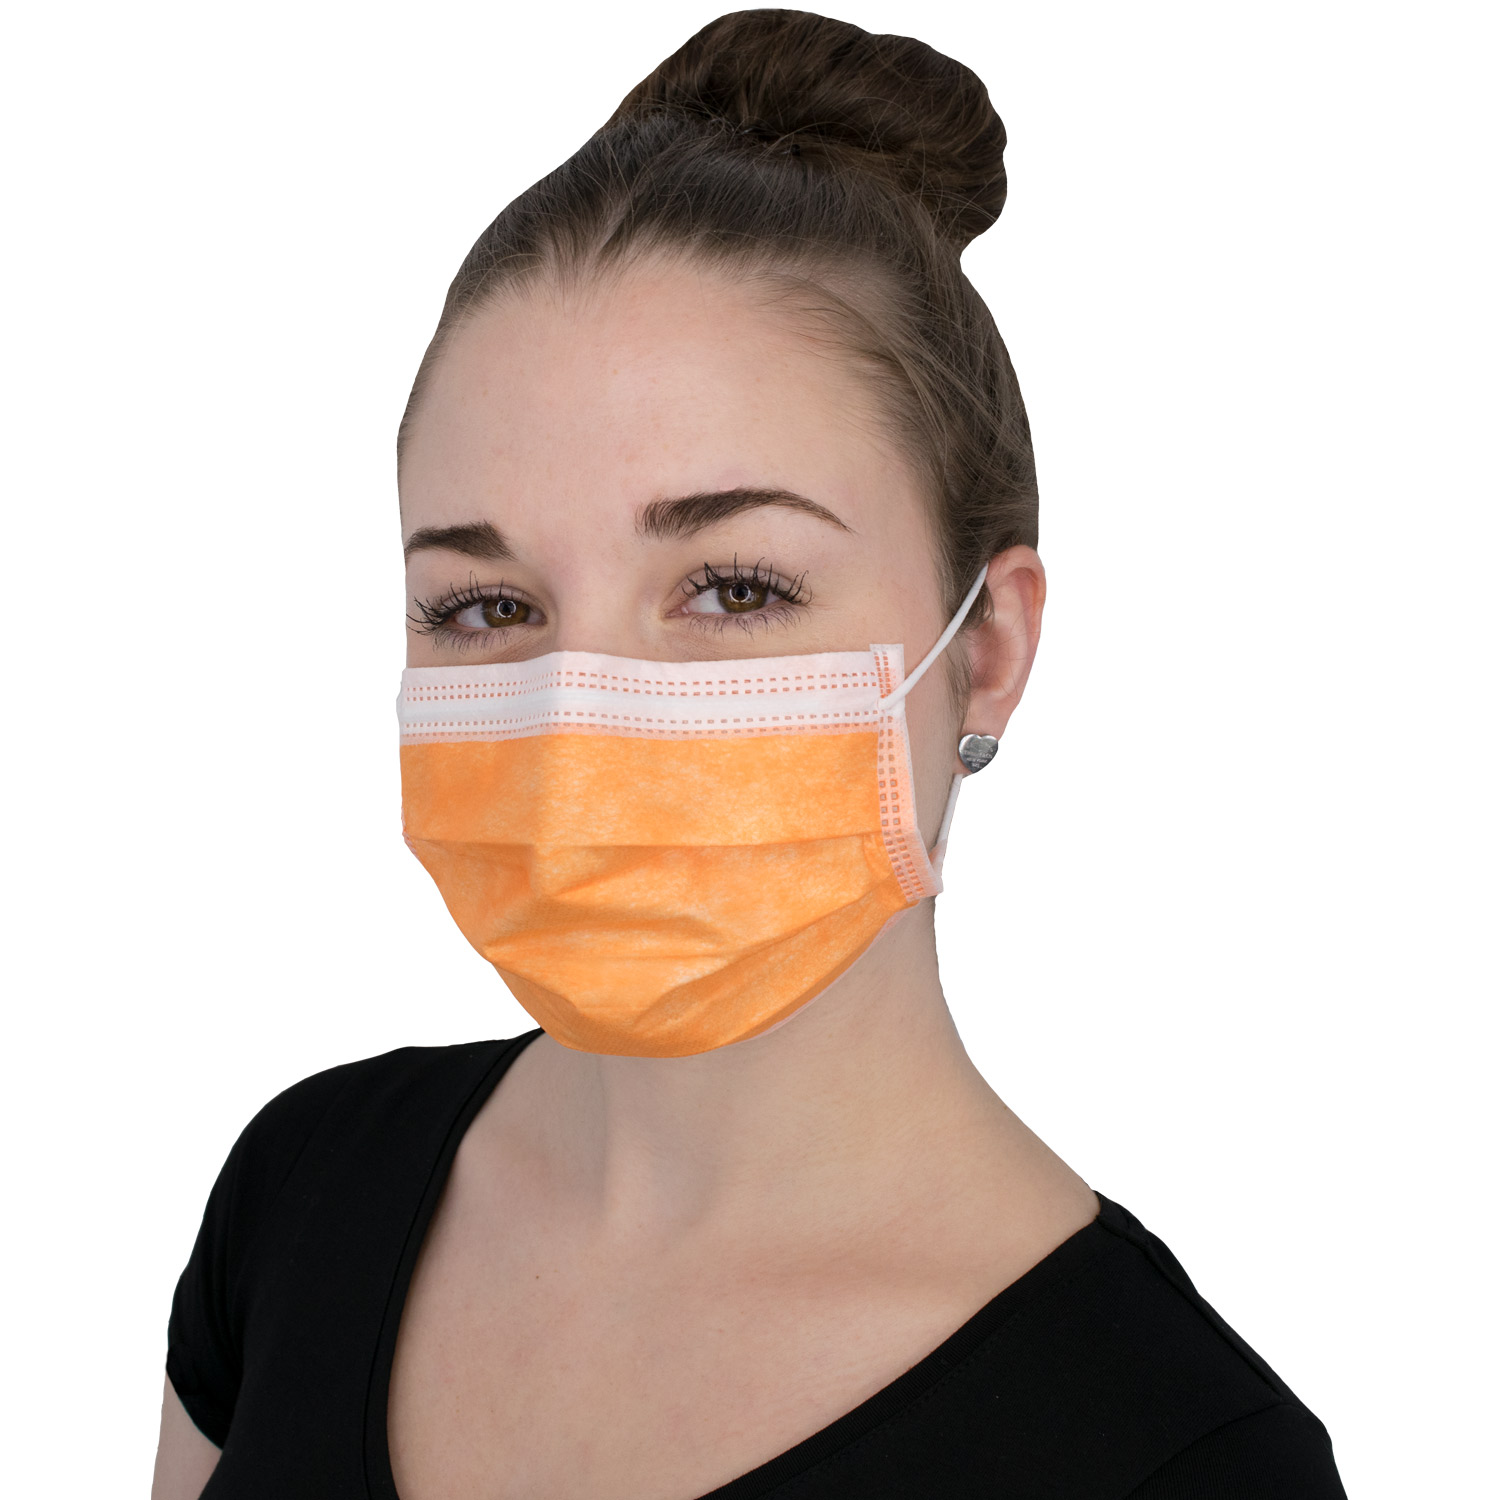 Mundschutz Soft Protect, 3-lagig, unsteril mit Gummi, orange, 50 St./Box